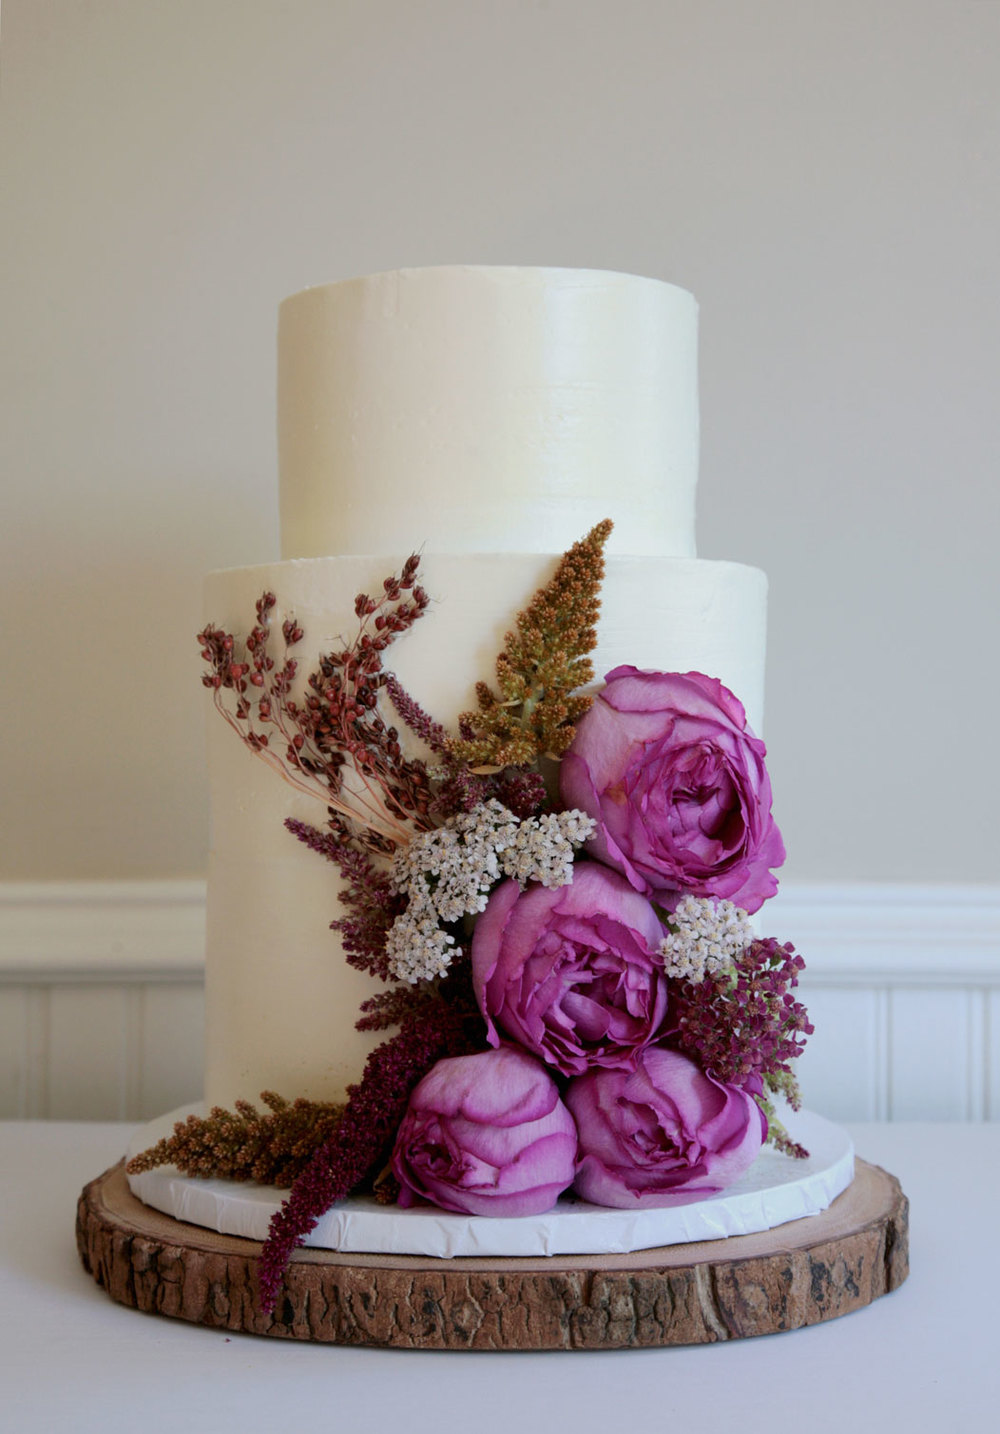 sweet-wedding-cake13.jpg